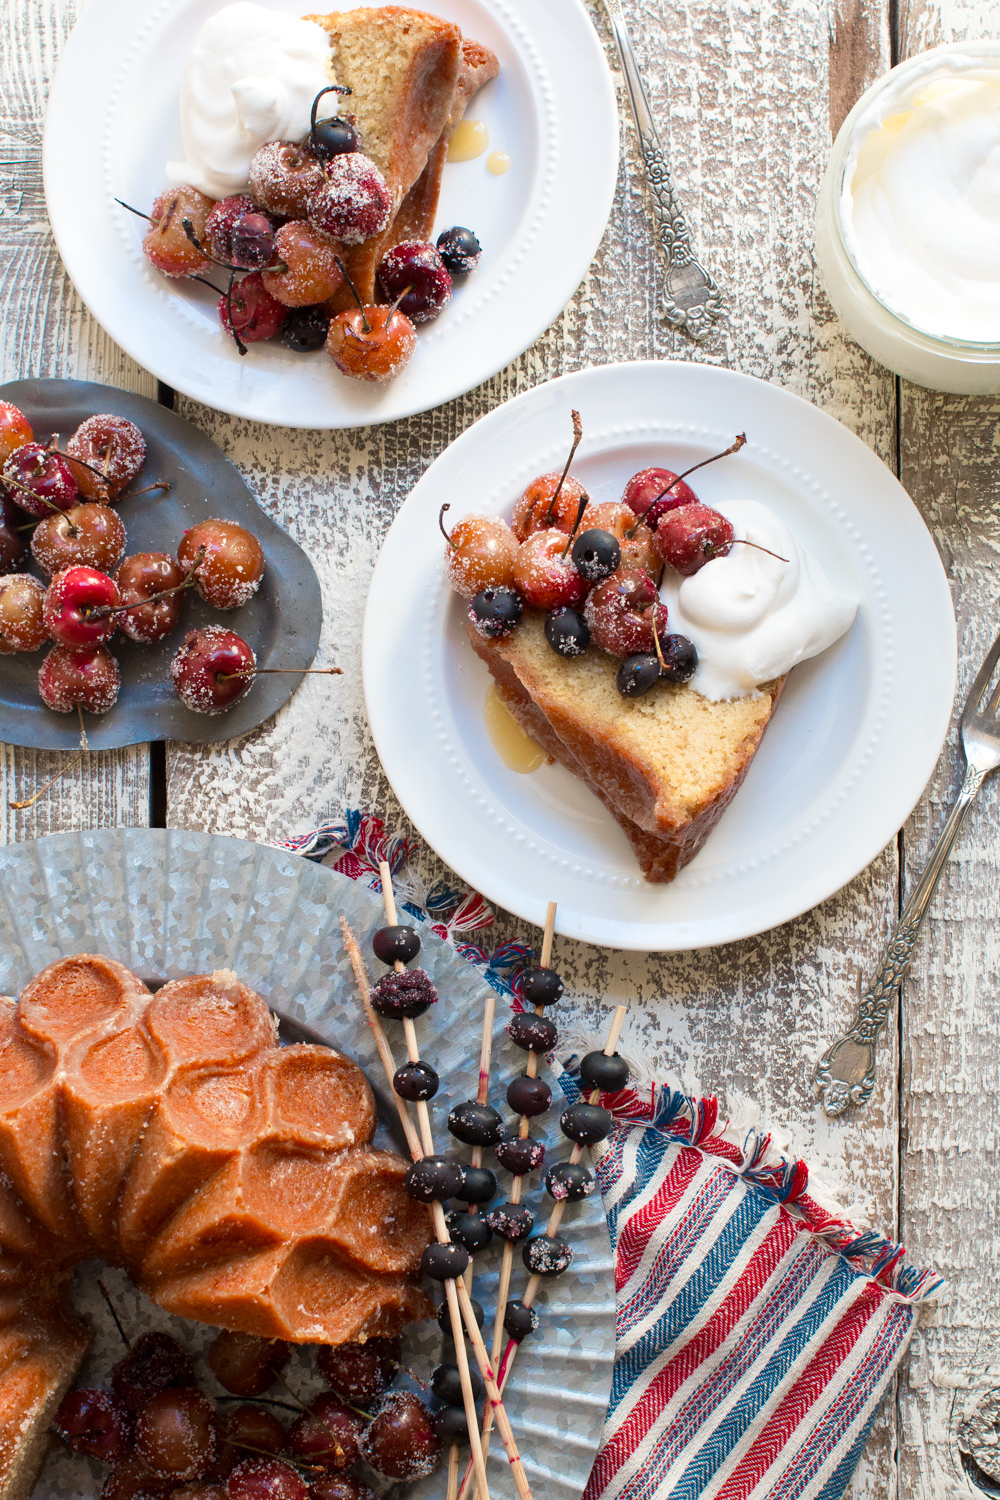 Brown Butter Bourbon Bundt Cake with Grilled Cherries, Blueberries and Whipped Cream